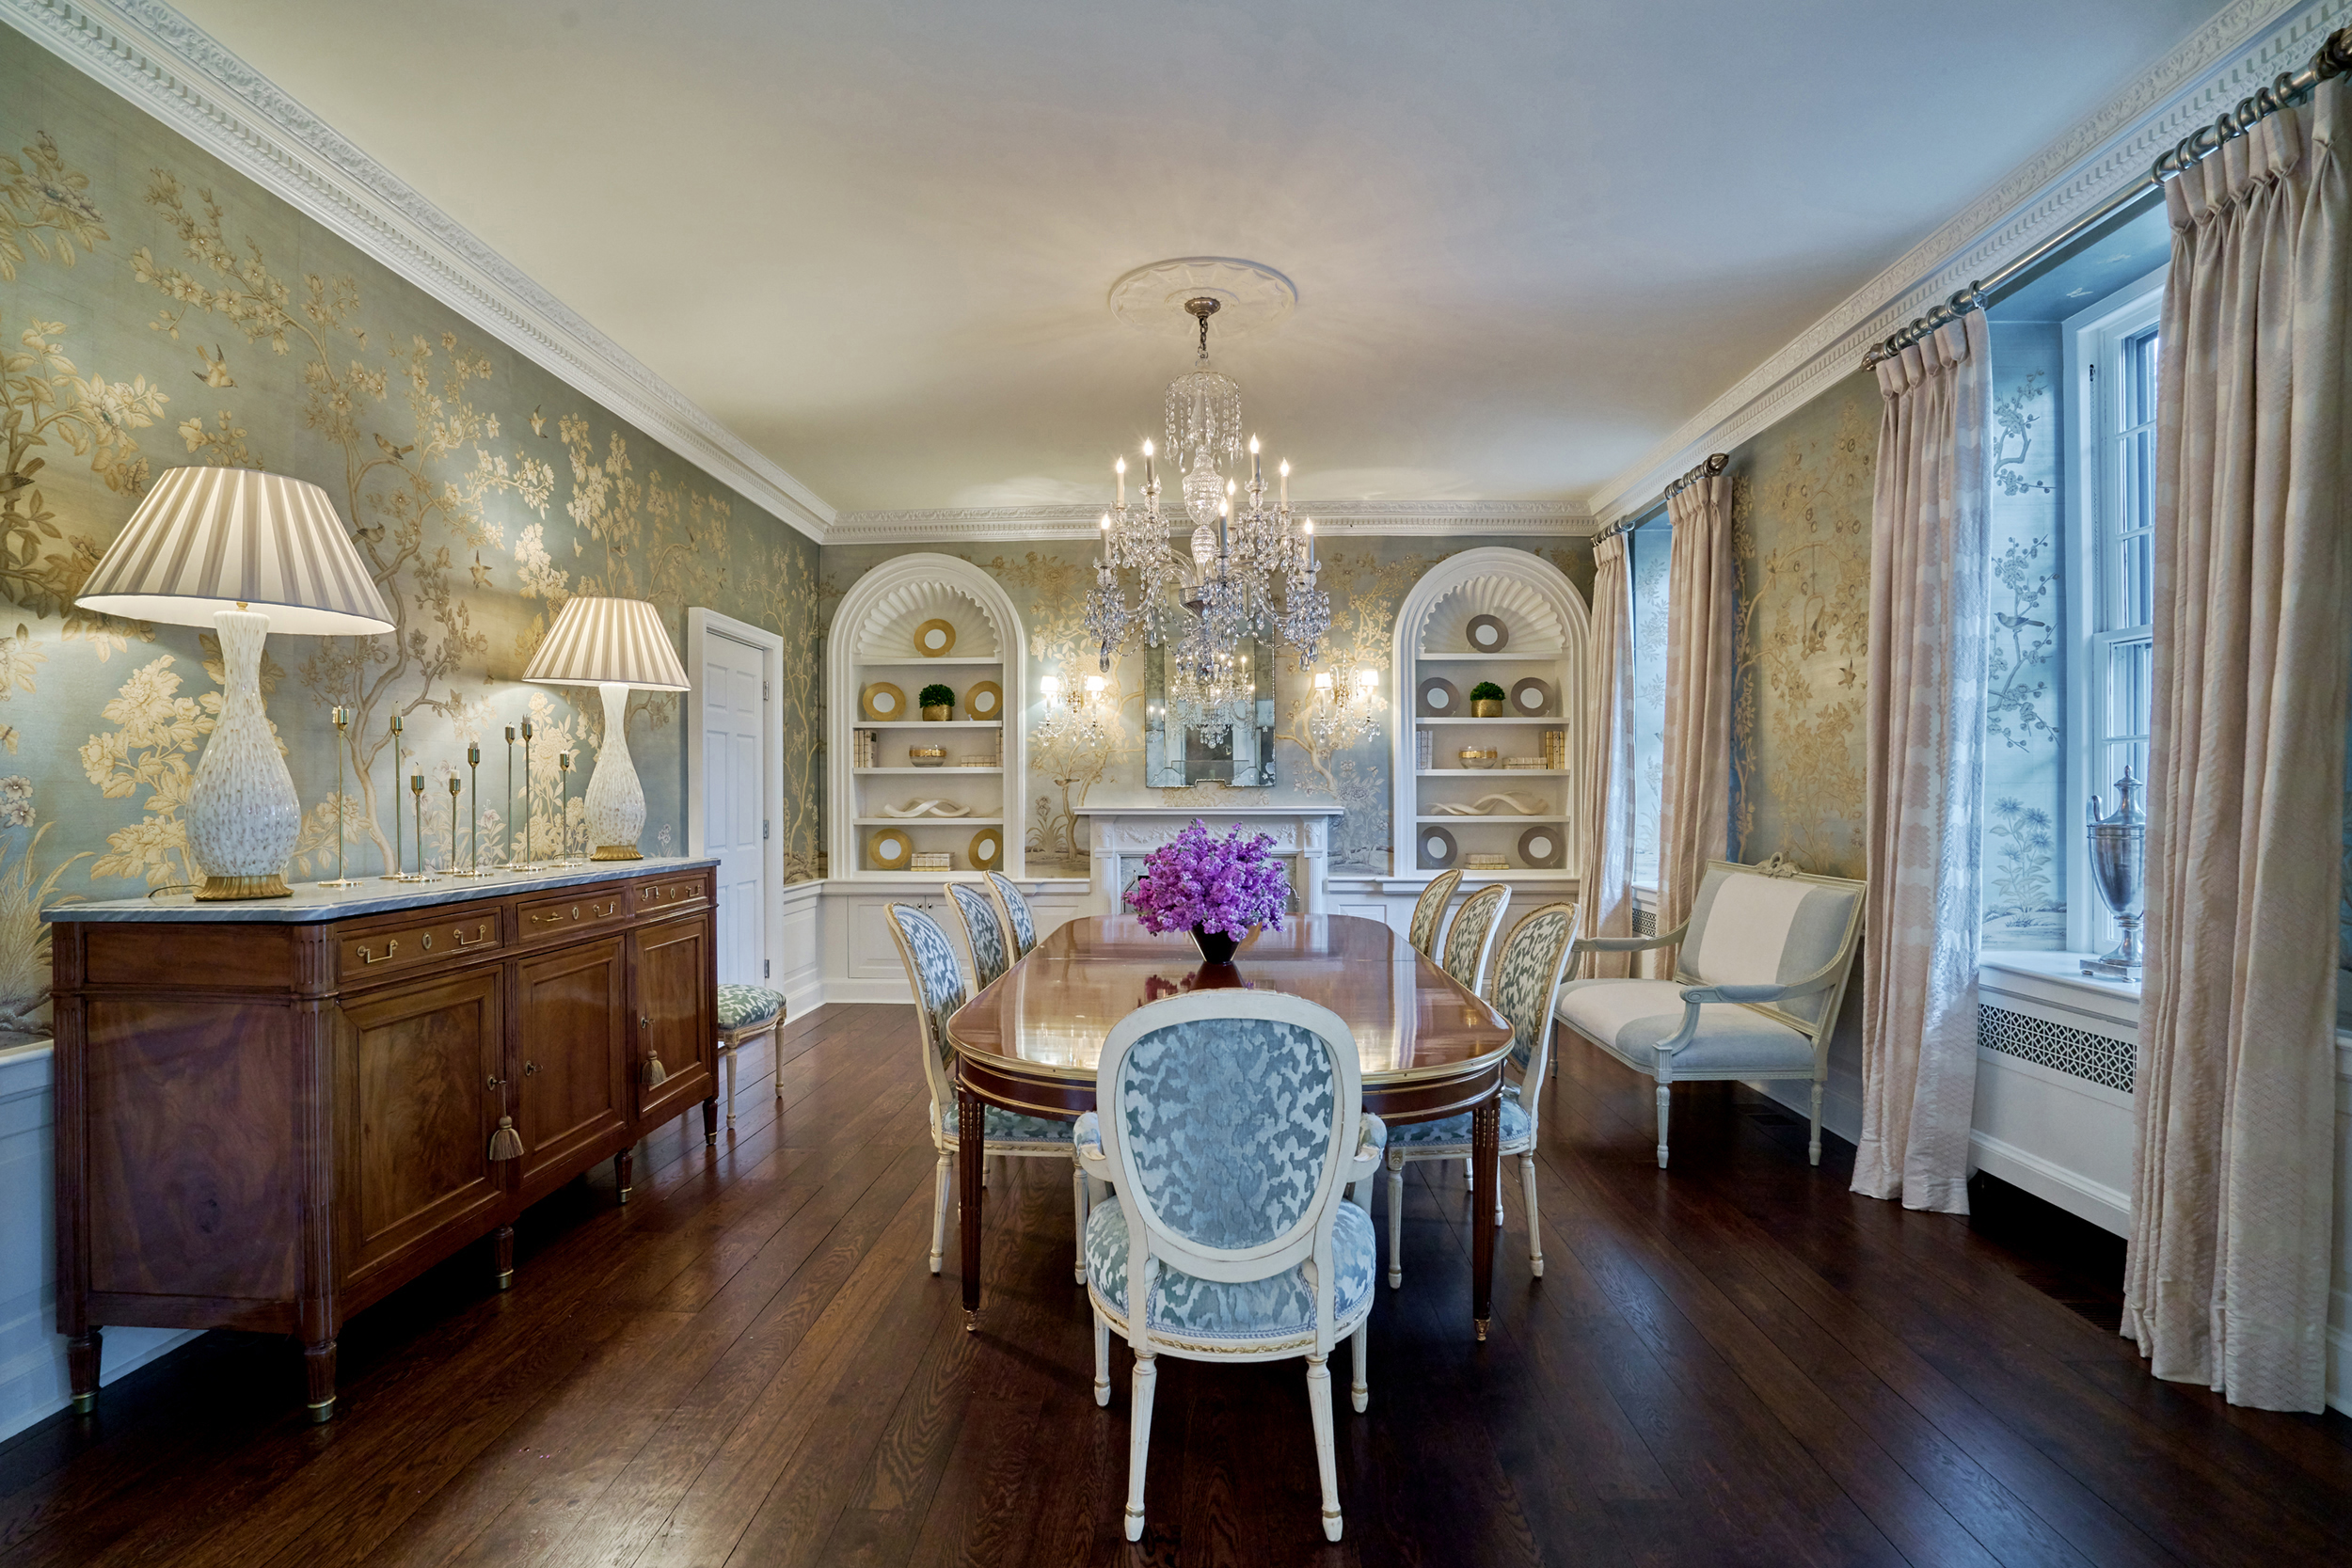 Gracie wallpaper merges with classical architecture.